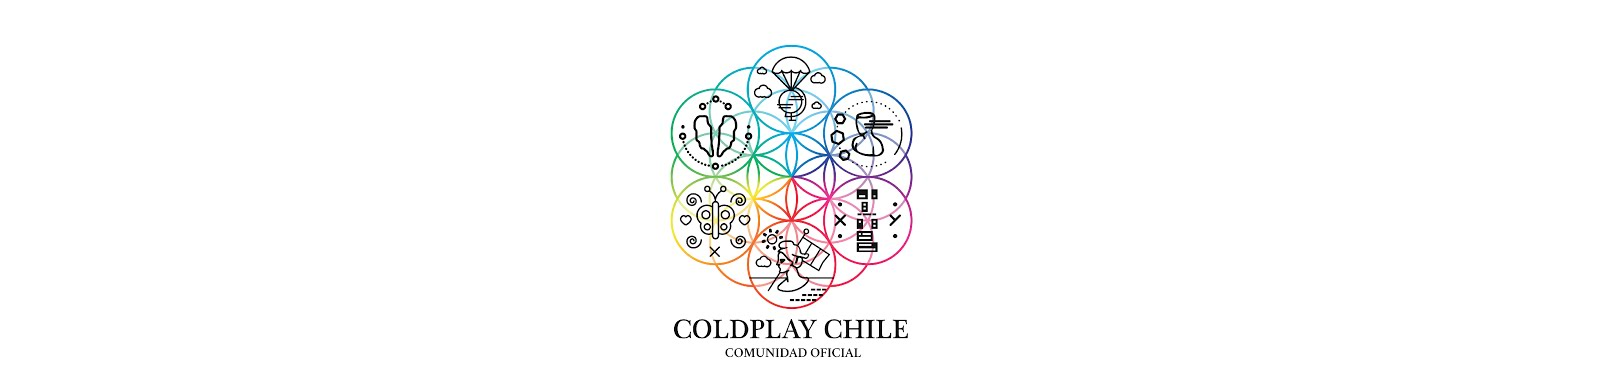 Coldplay Chile